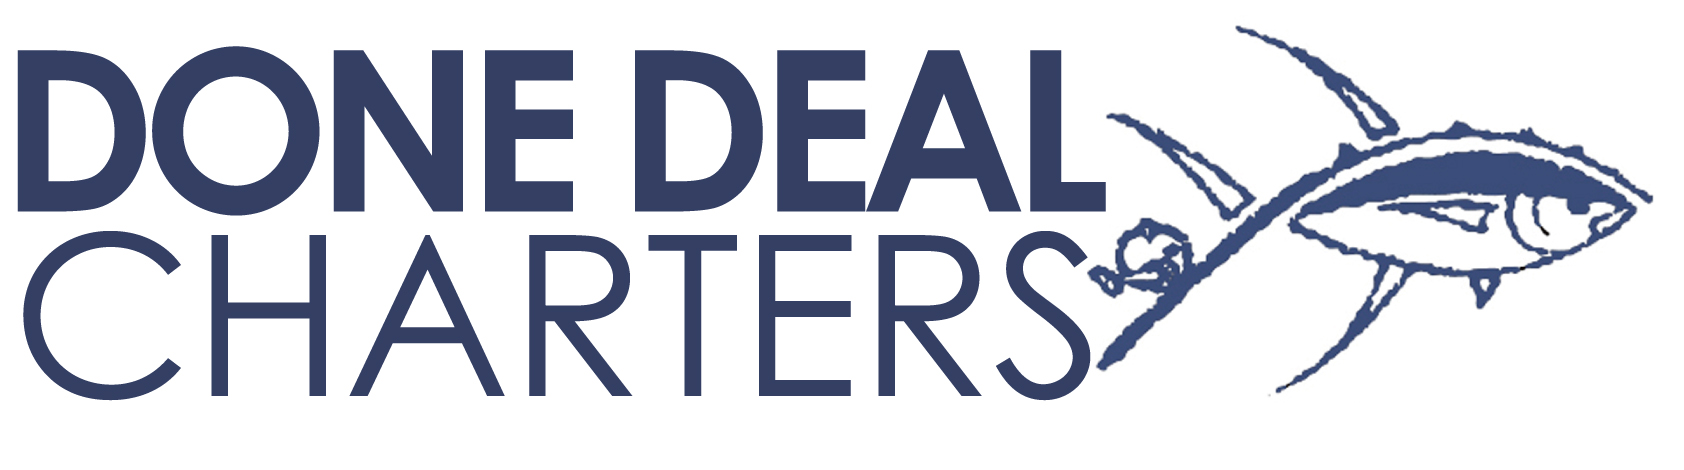 Done Deal Charters